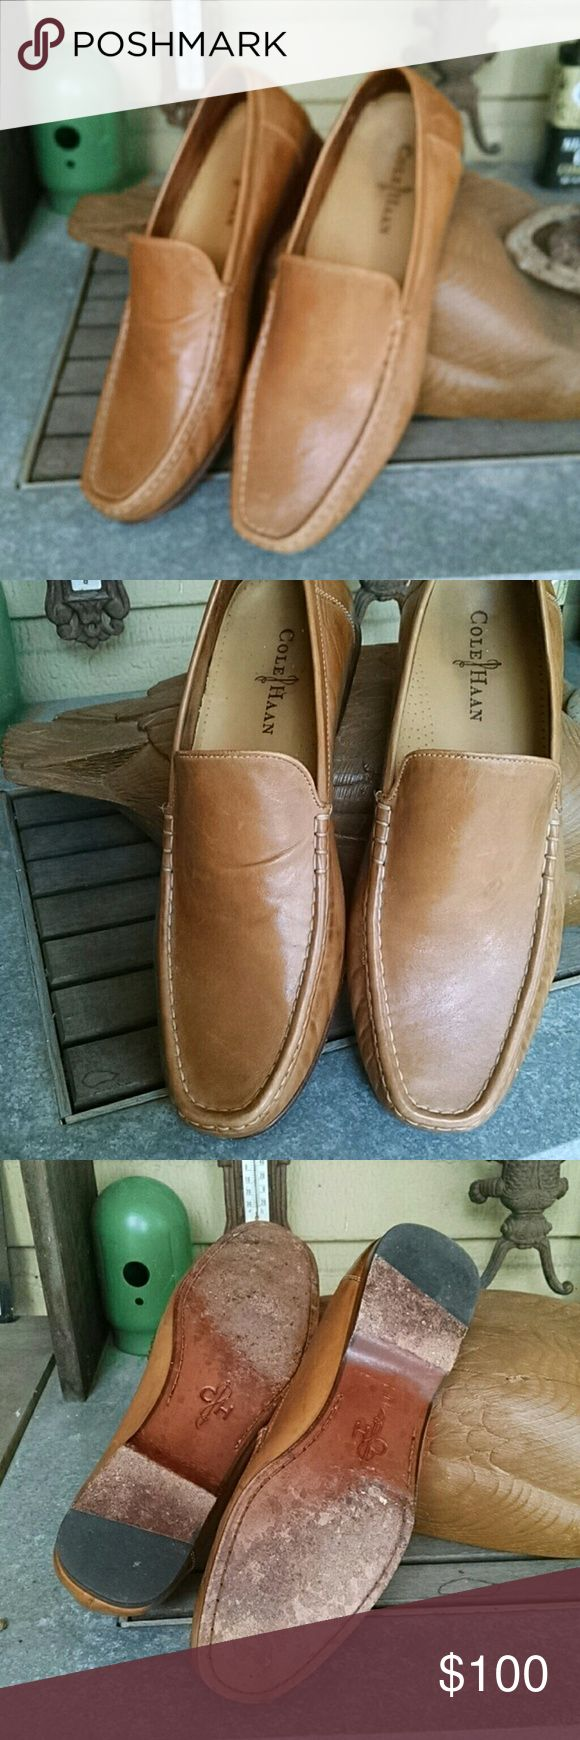 Cole Hann Tan loafer  11M Soft leather barely worn Cole Haan Shoes Loafers & Slip-Ons